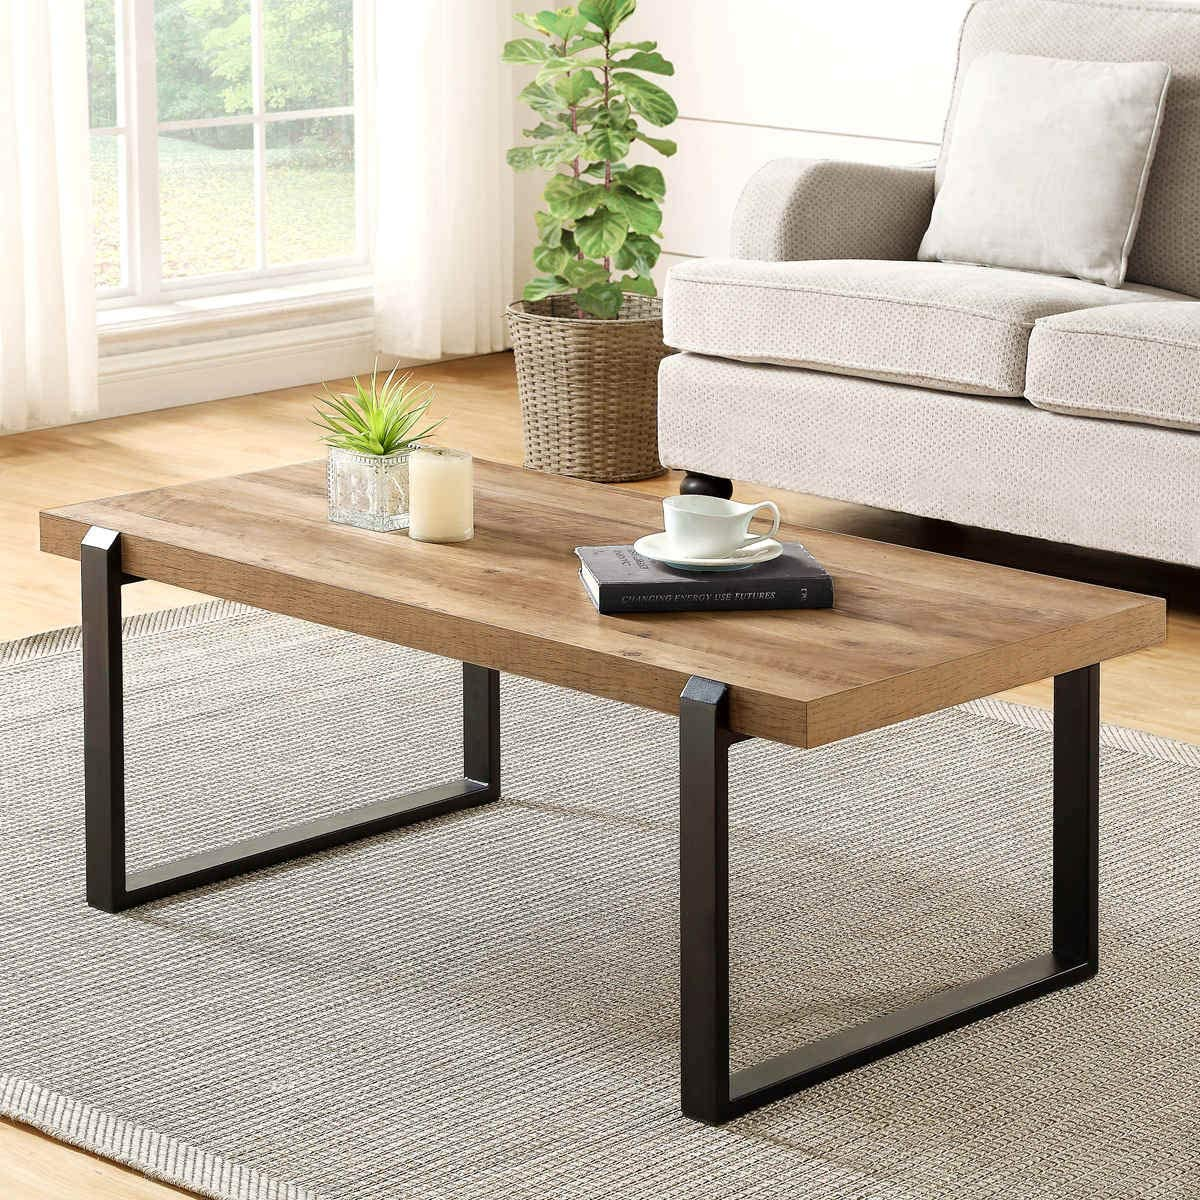 Amazon Com Foluban Rustic Coffee Table Wood And Metal Industrial Cocktail Table For Living Room 47 Inch Oak Kitchen Dining